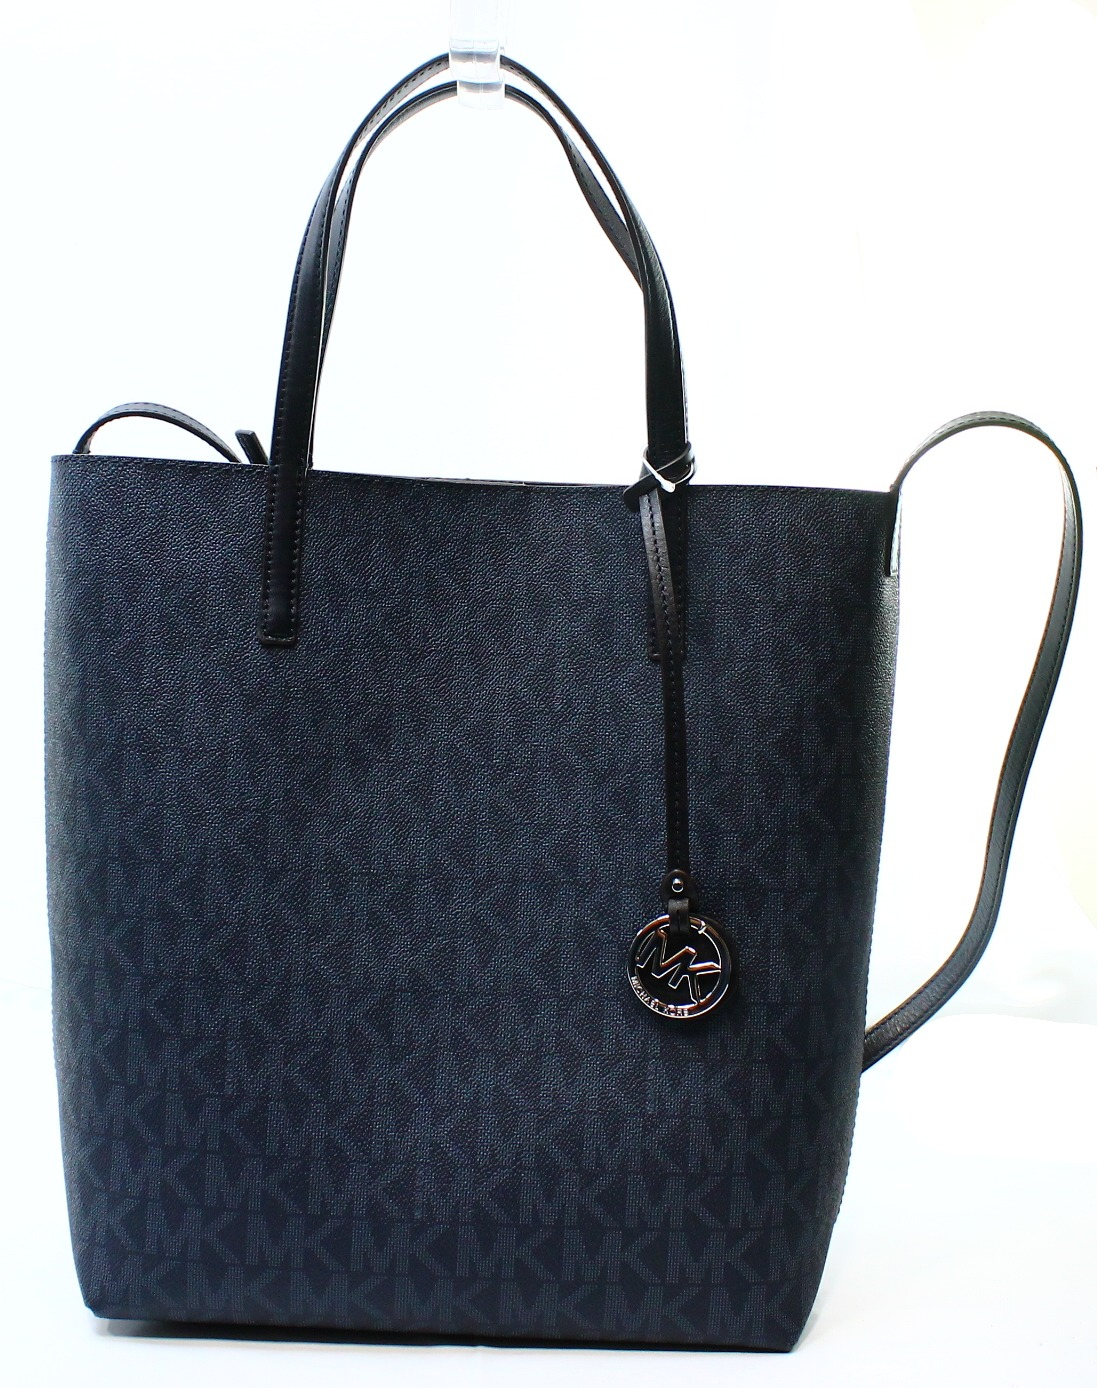 michael kors new blue light sky pvc hayley signature tote bag purse. Black Bedroom Furniture Sets. Home Design Ideas